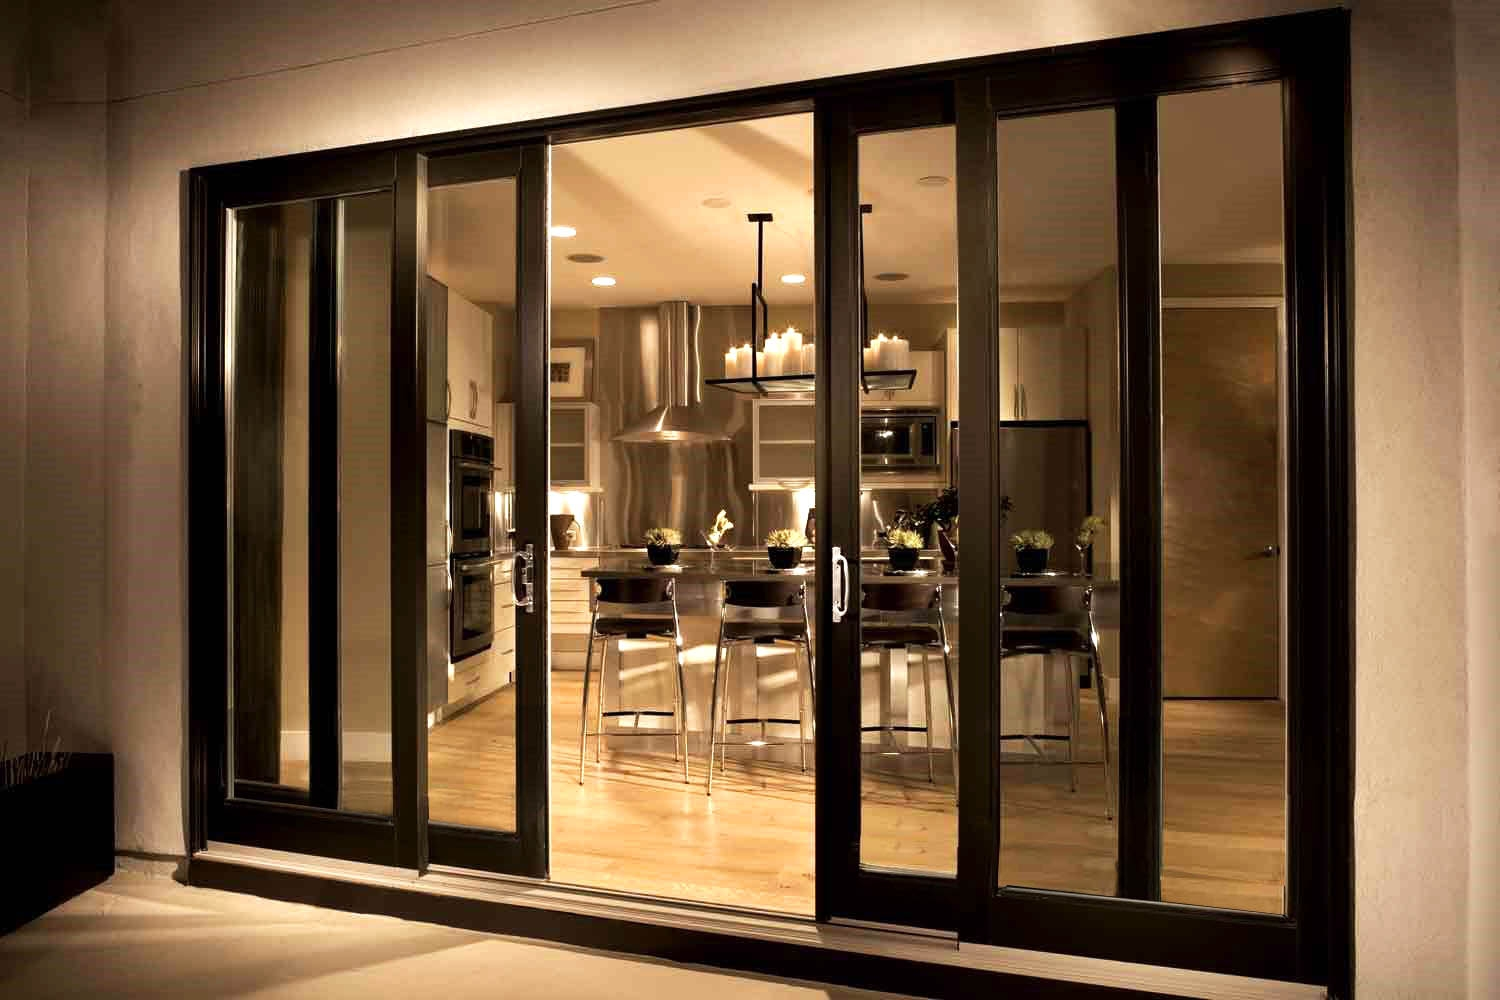 Fiberglass Sliding Door Companies5 reasons why your home needs fiberglass sliding patio doors